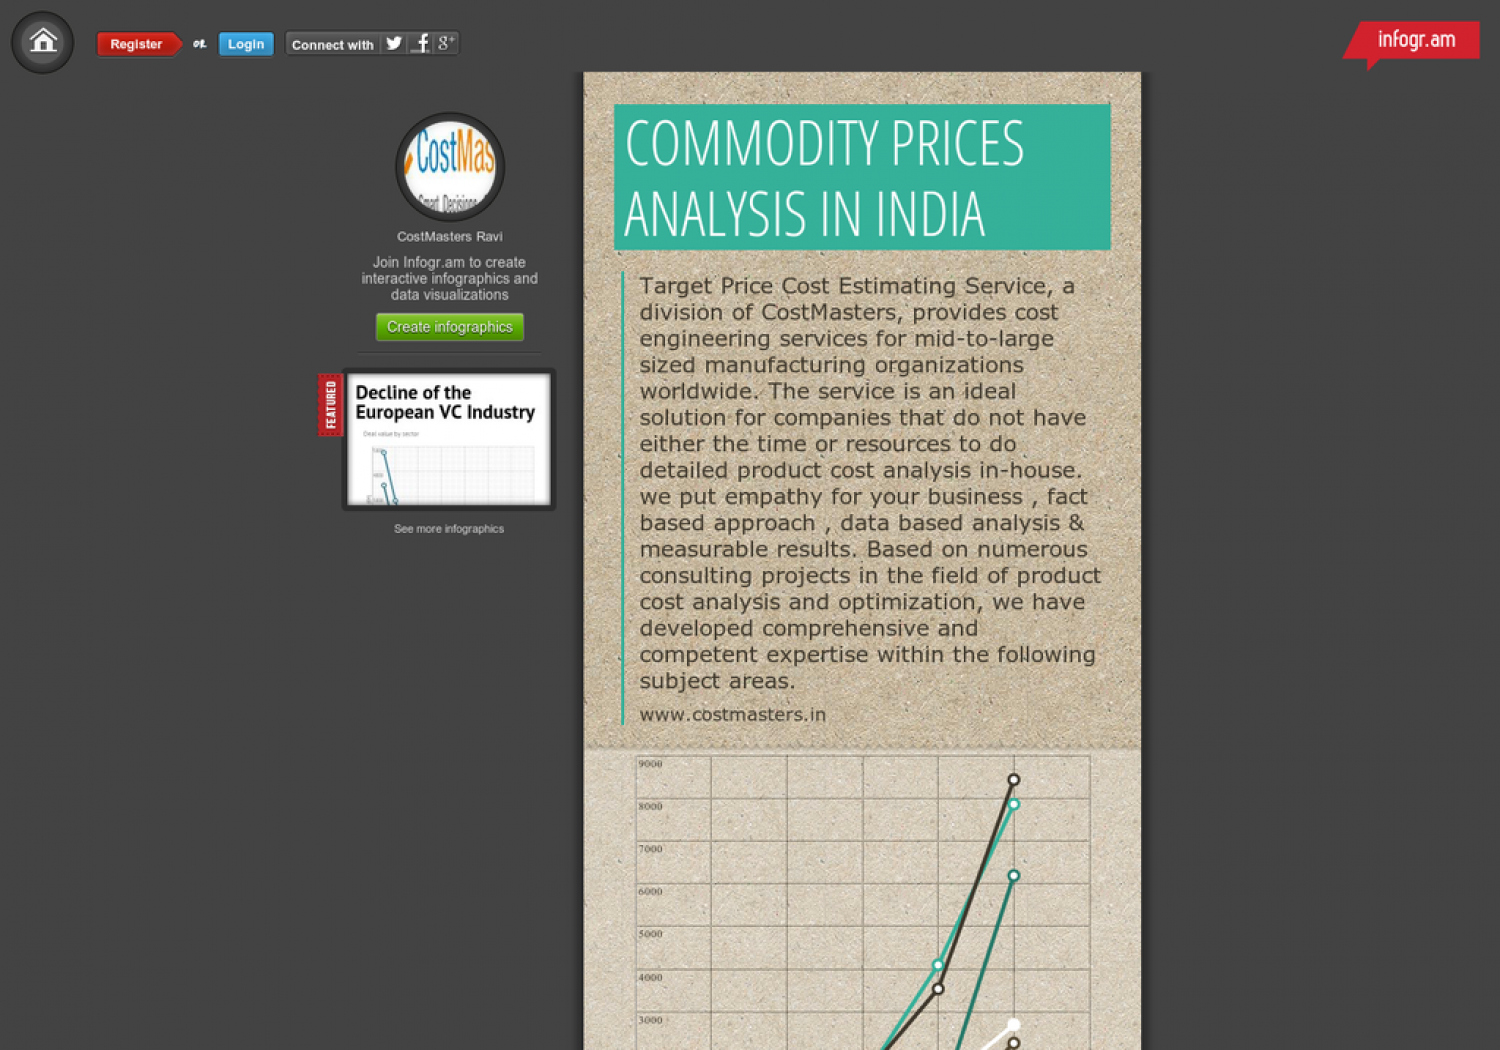 CostMasters Introduce to Commodity Prices India Infographic